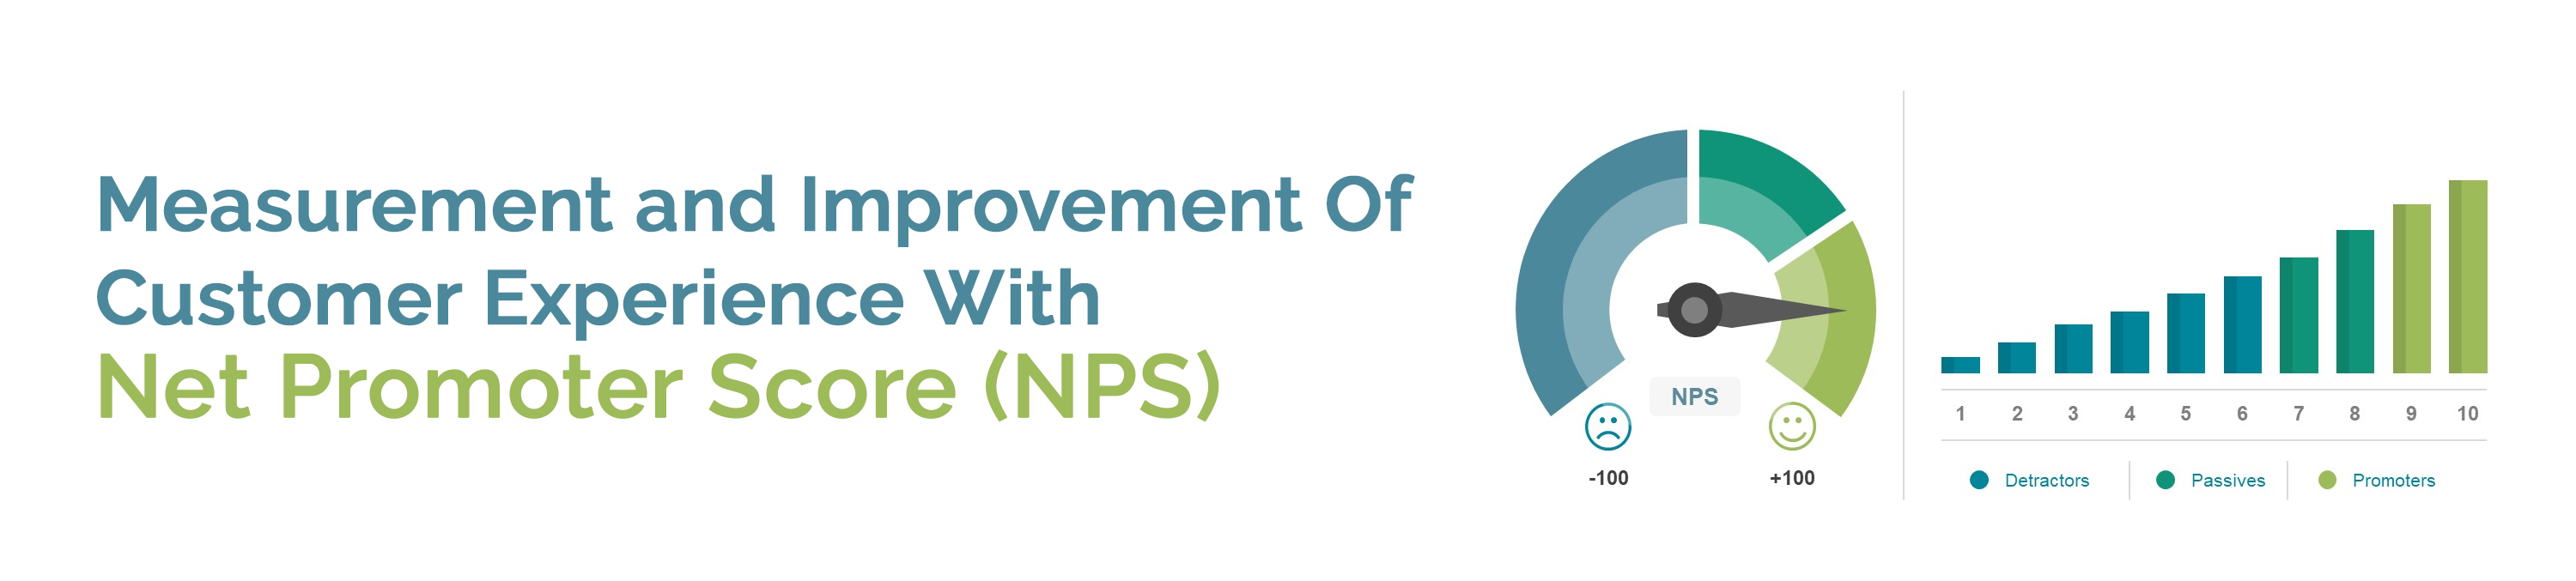 Measurement and Improvement Of Customer Experience With Net Promoter Score (NPS)